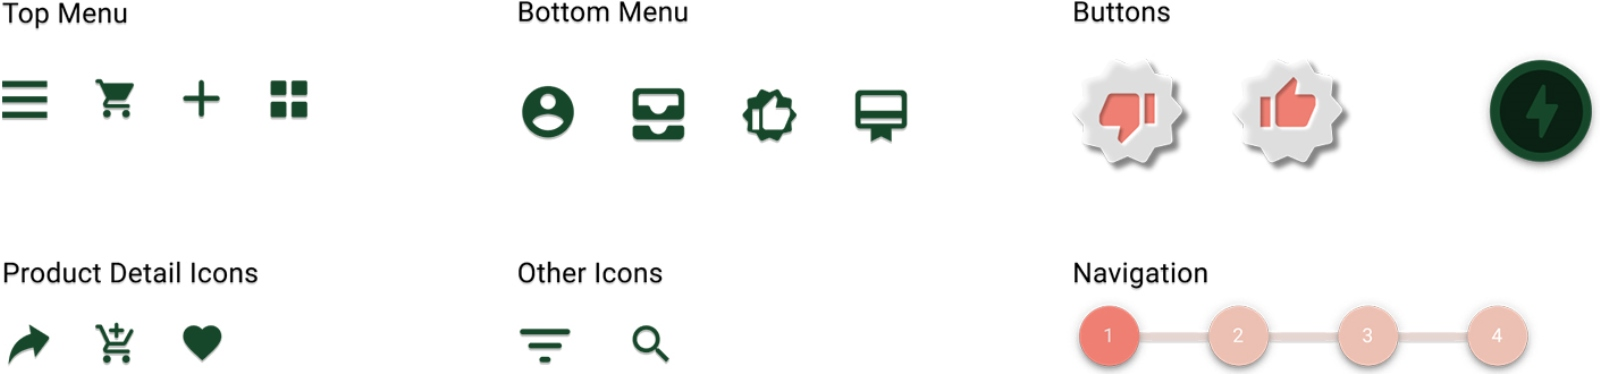 Top Bar, Product Detail Icons & Navigation Buttons